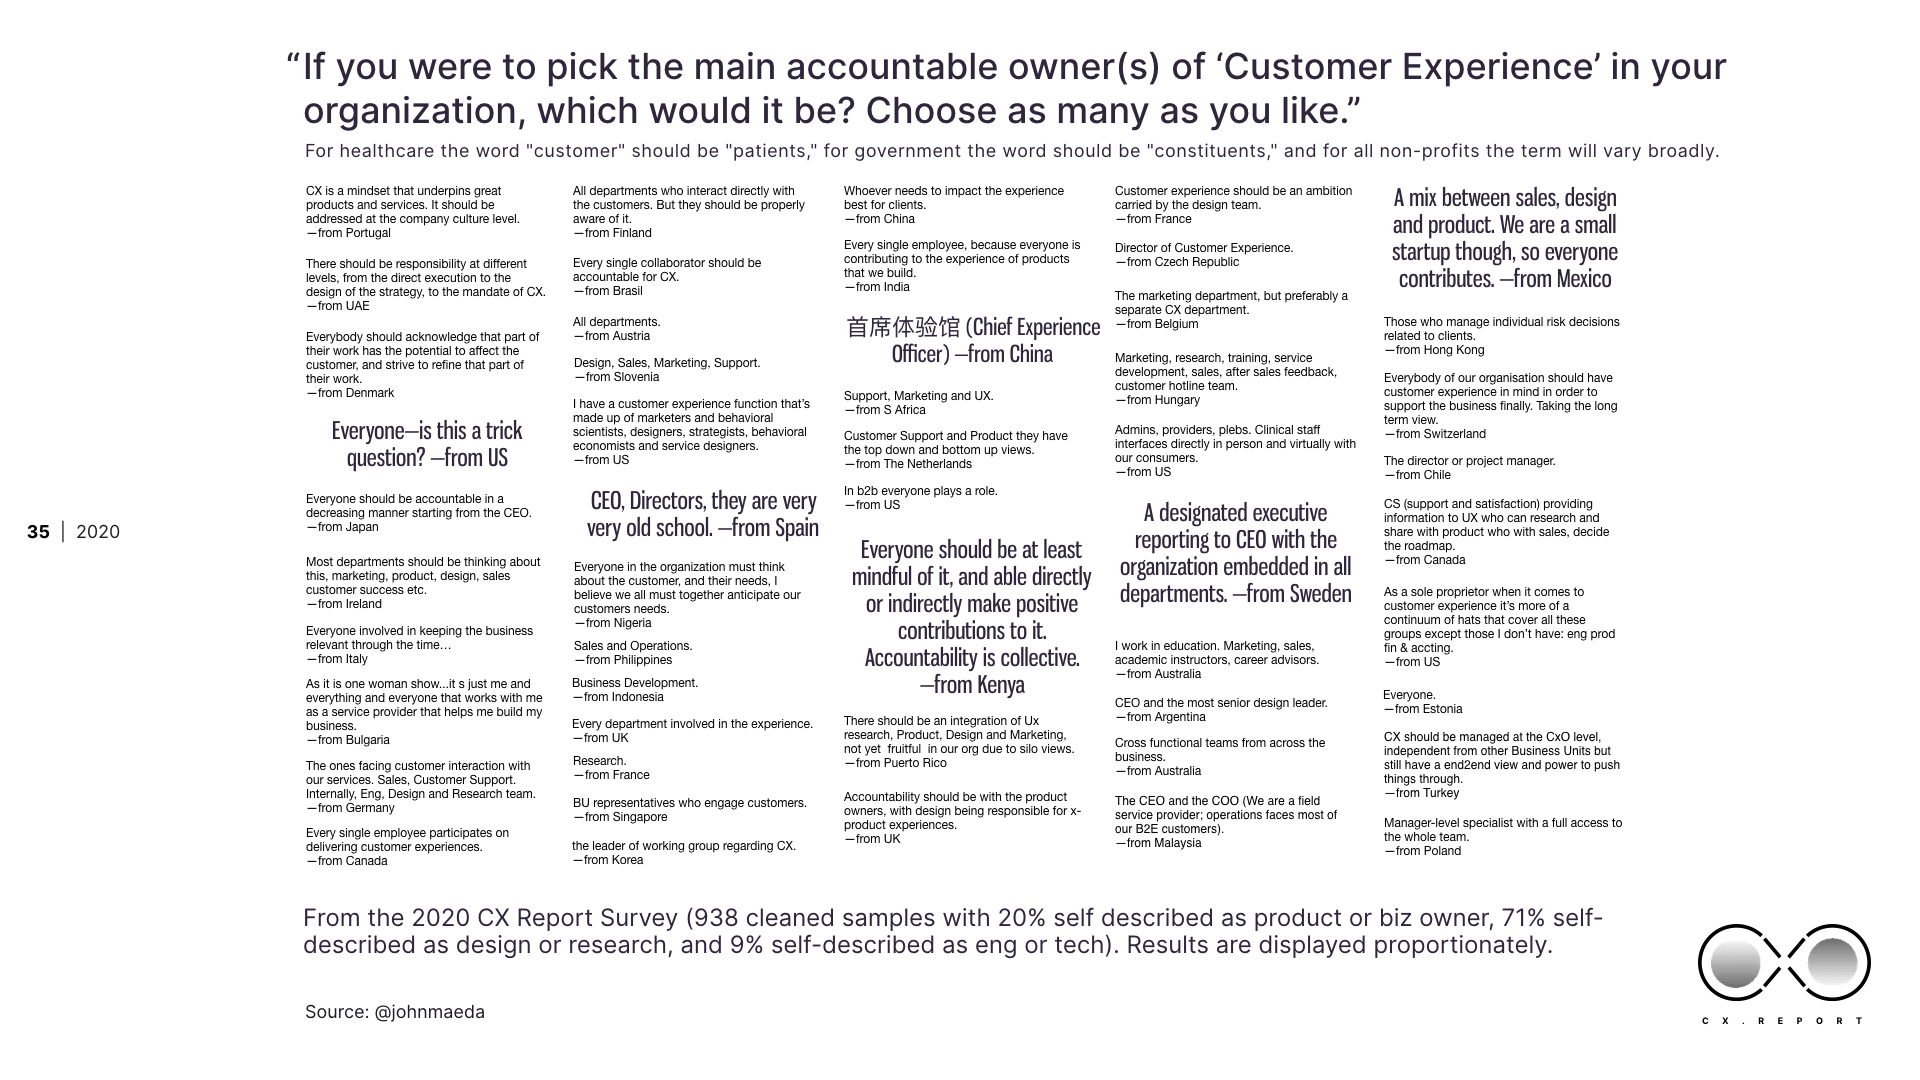 Responses to who should own the customer experience from around the world and in depth https://cx.report/2020/05/16/1000-perspectives-on-who-should-really-own-customer-experience/